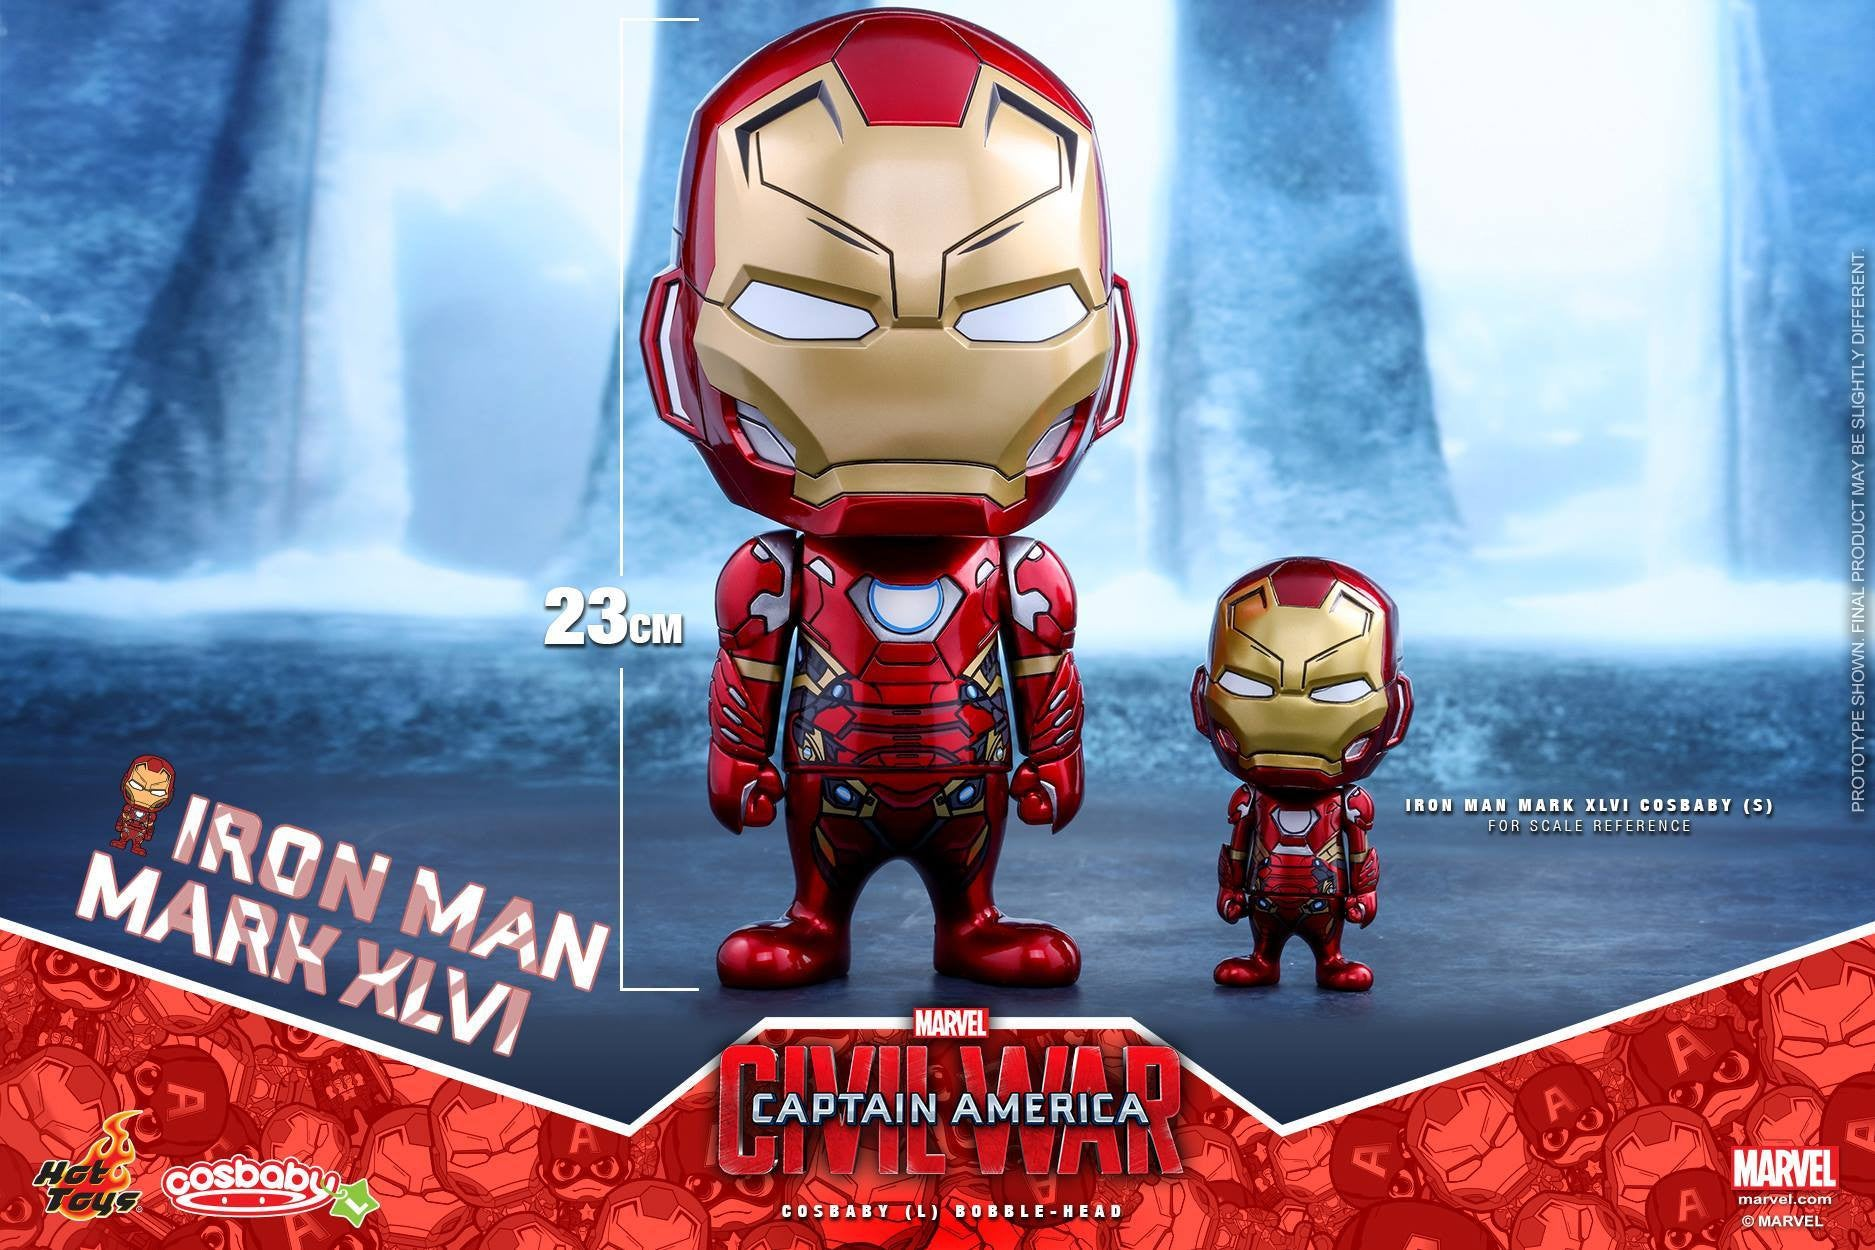 Hot Toys - COSB324 - Captain America: Civil War - Iron Man Mark XLVI Cosbaby (L) Bobble-Head - Marvelous Toys - 1